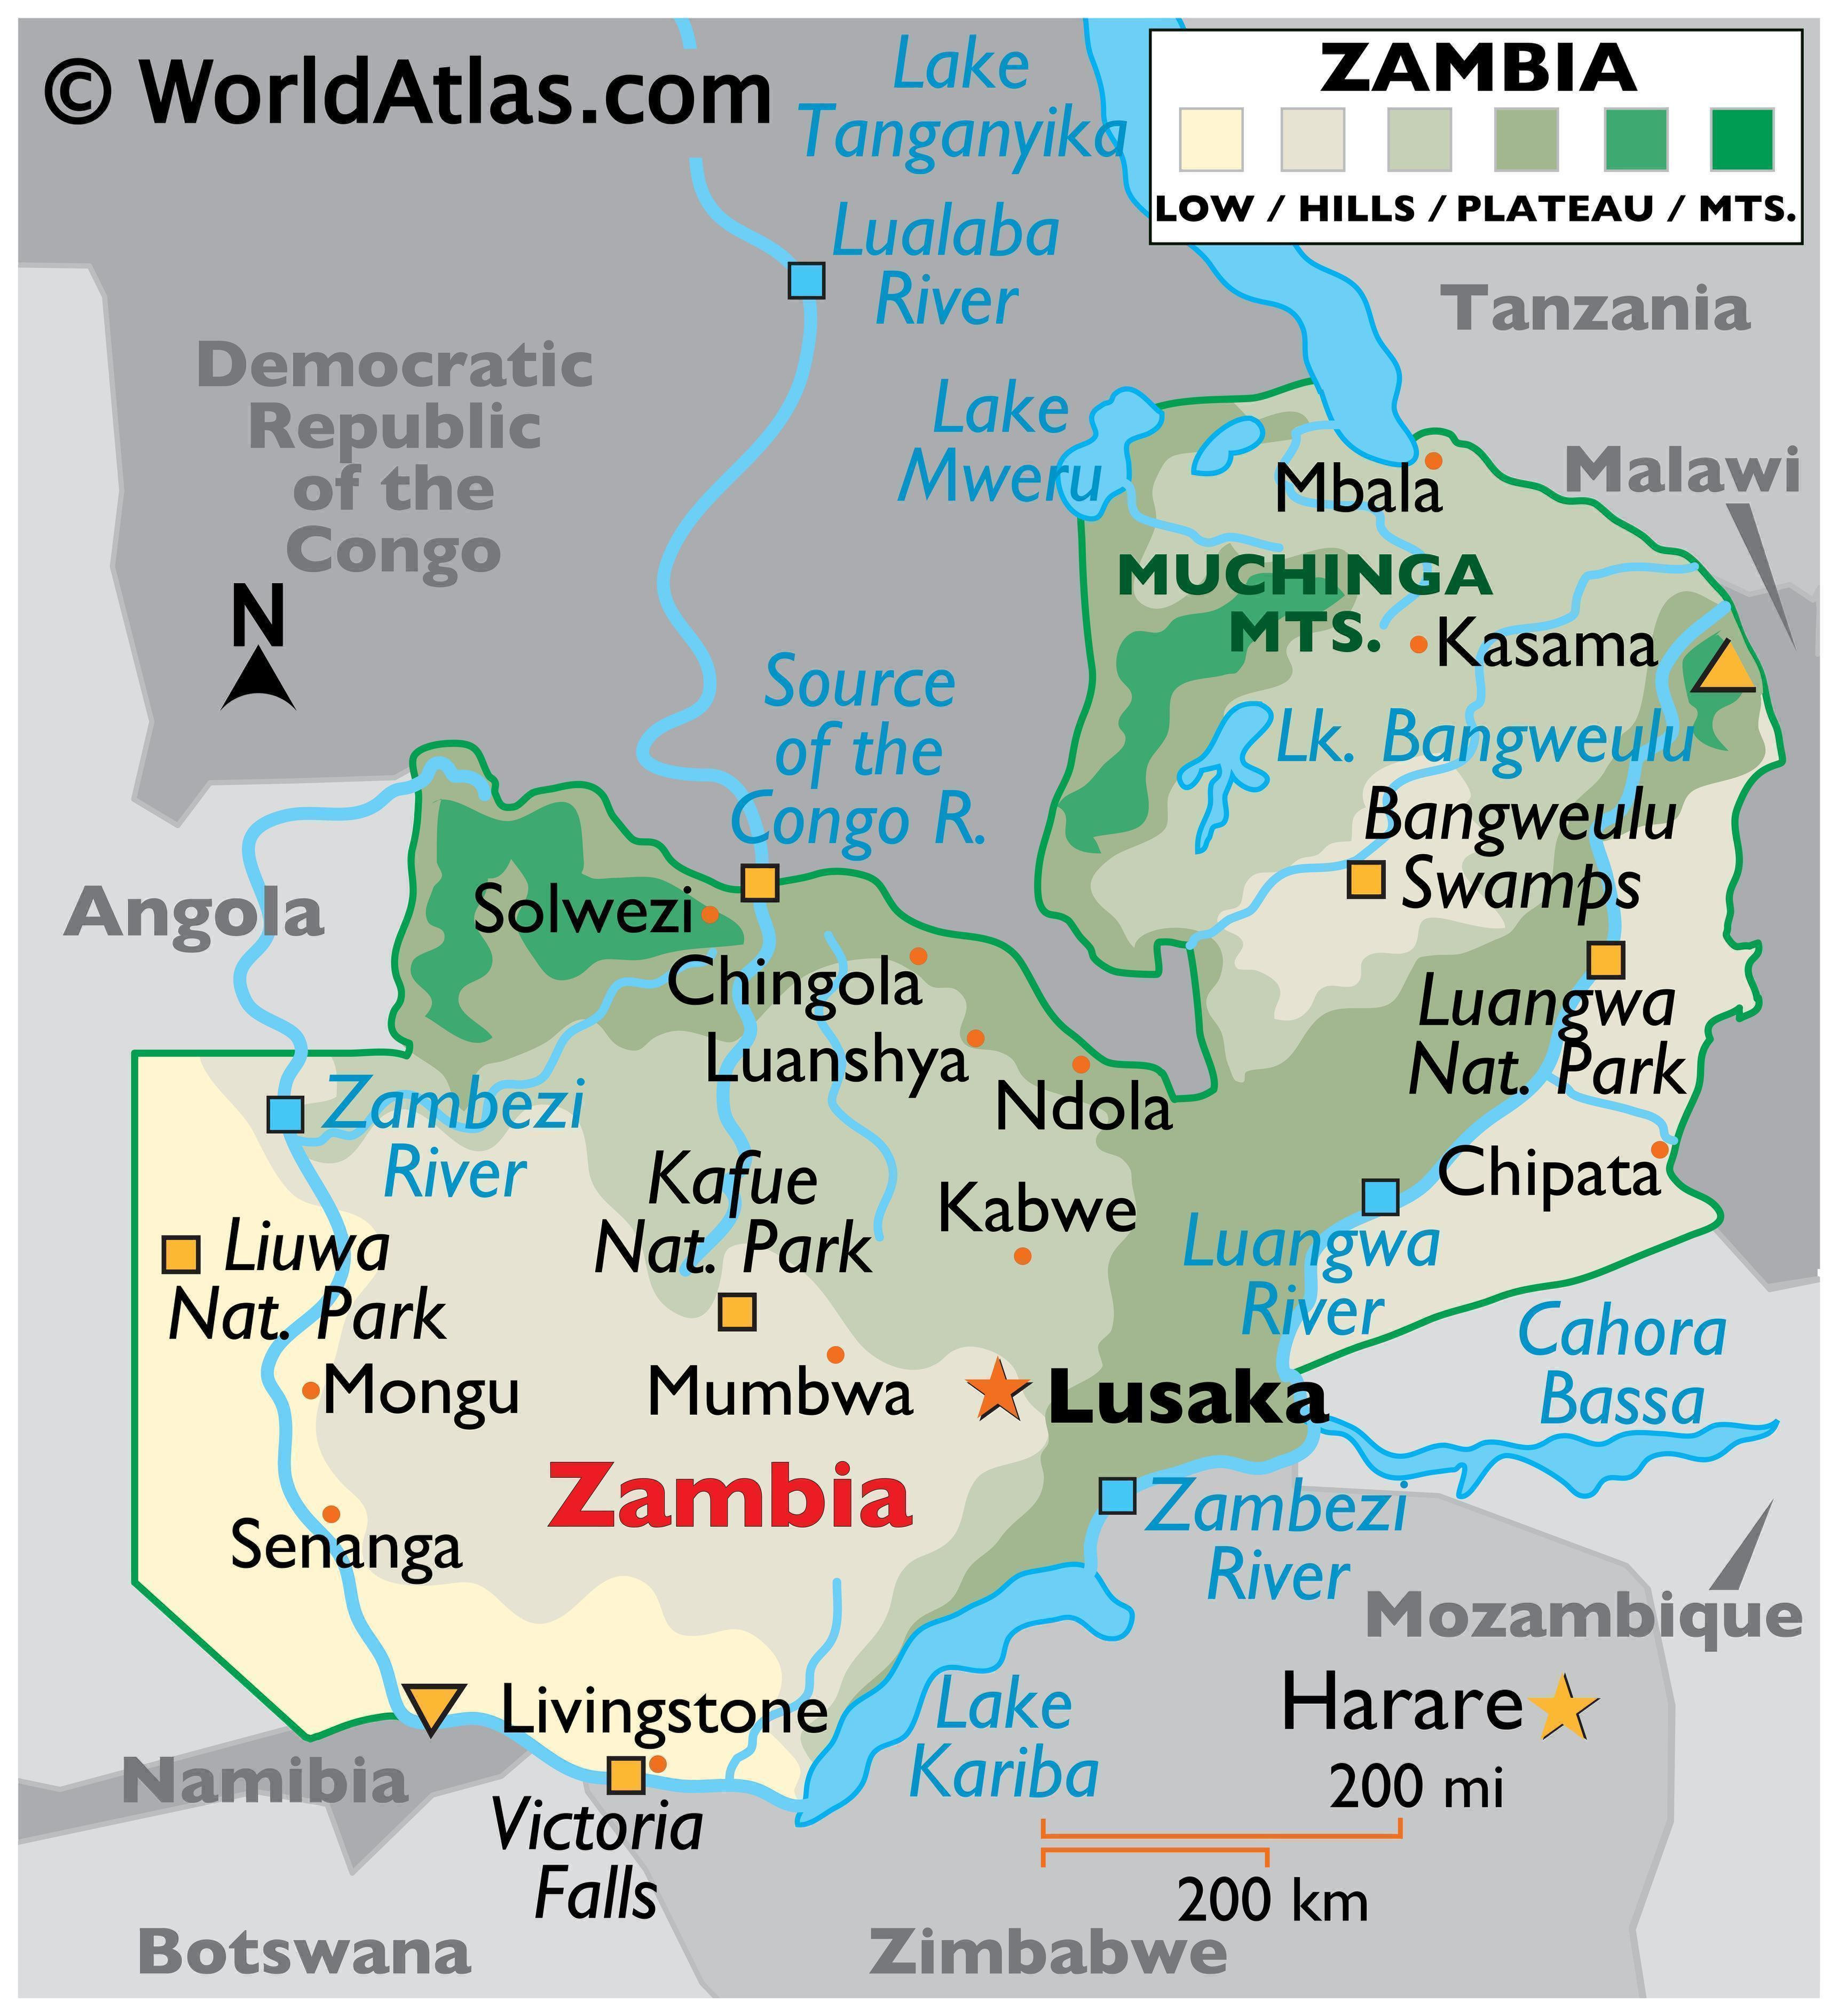 Physical Map of Zambia. It shows the physical features of Zambia including the major mountain ranges, rivers, lakes, and other natural features.